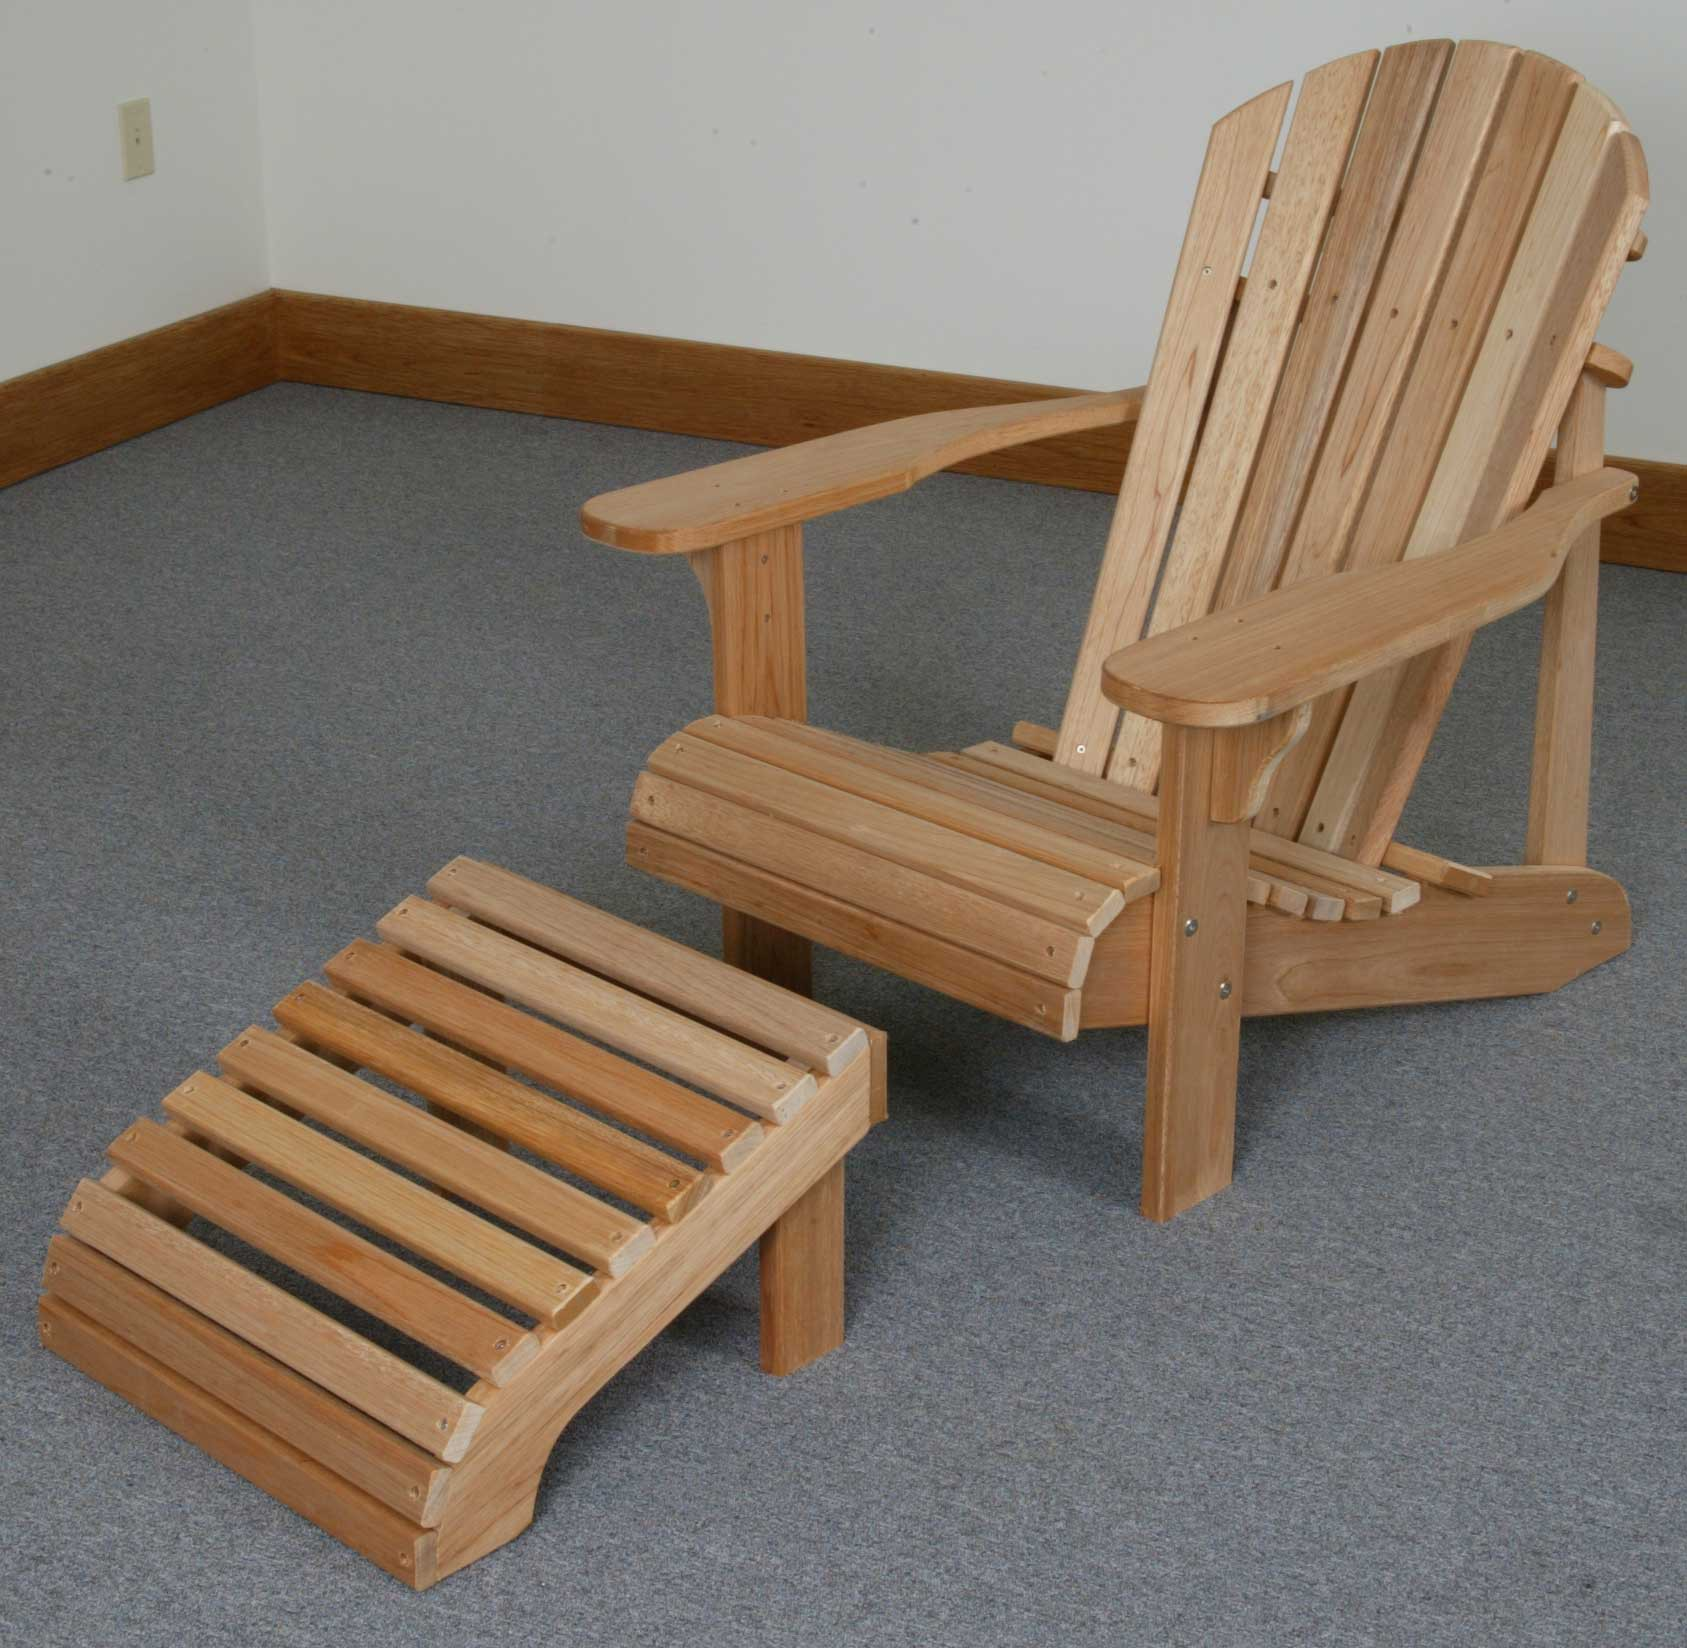 King Tables Folding Adirondack Chair with Ottoman